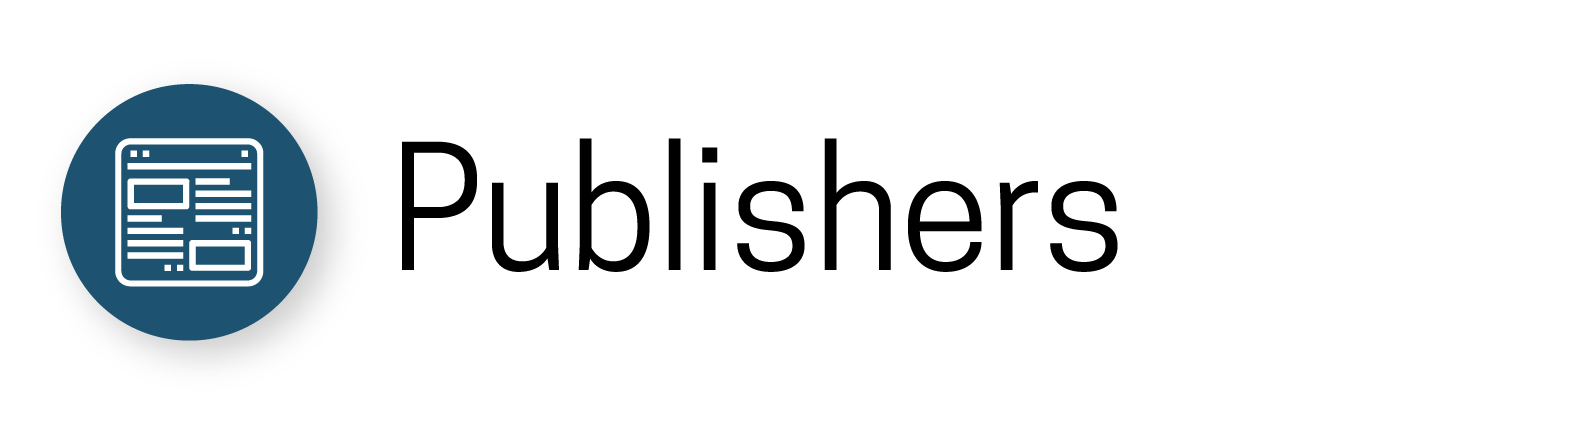 publishers icon